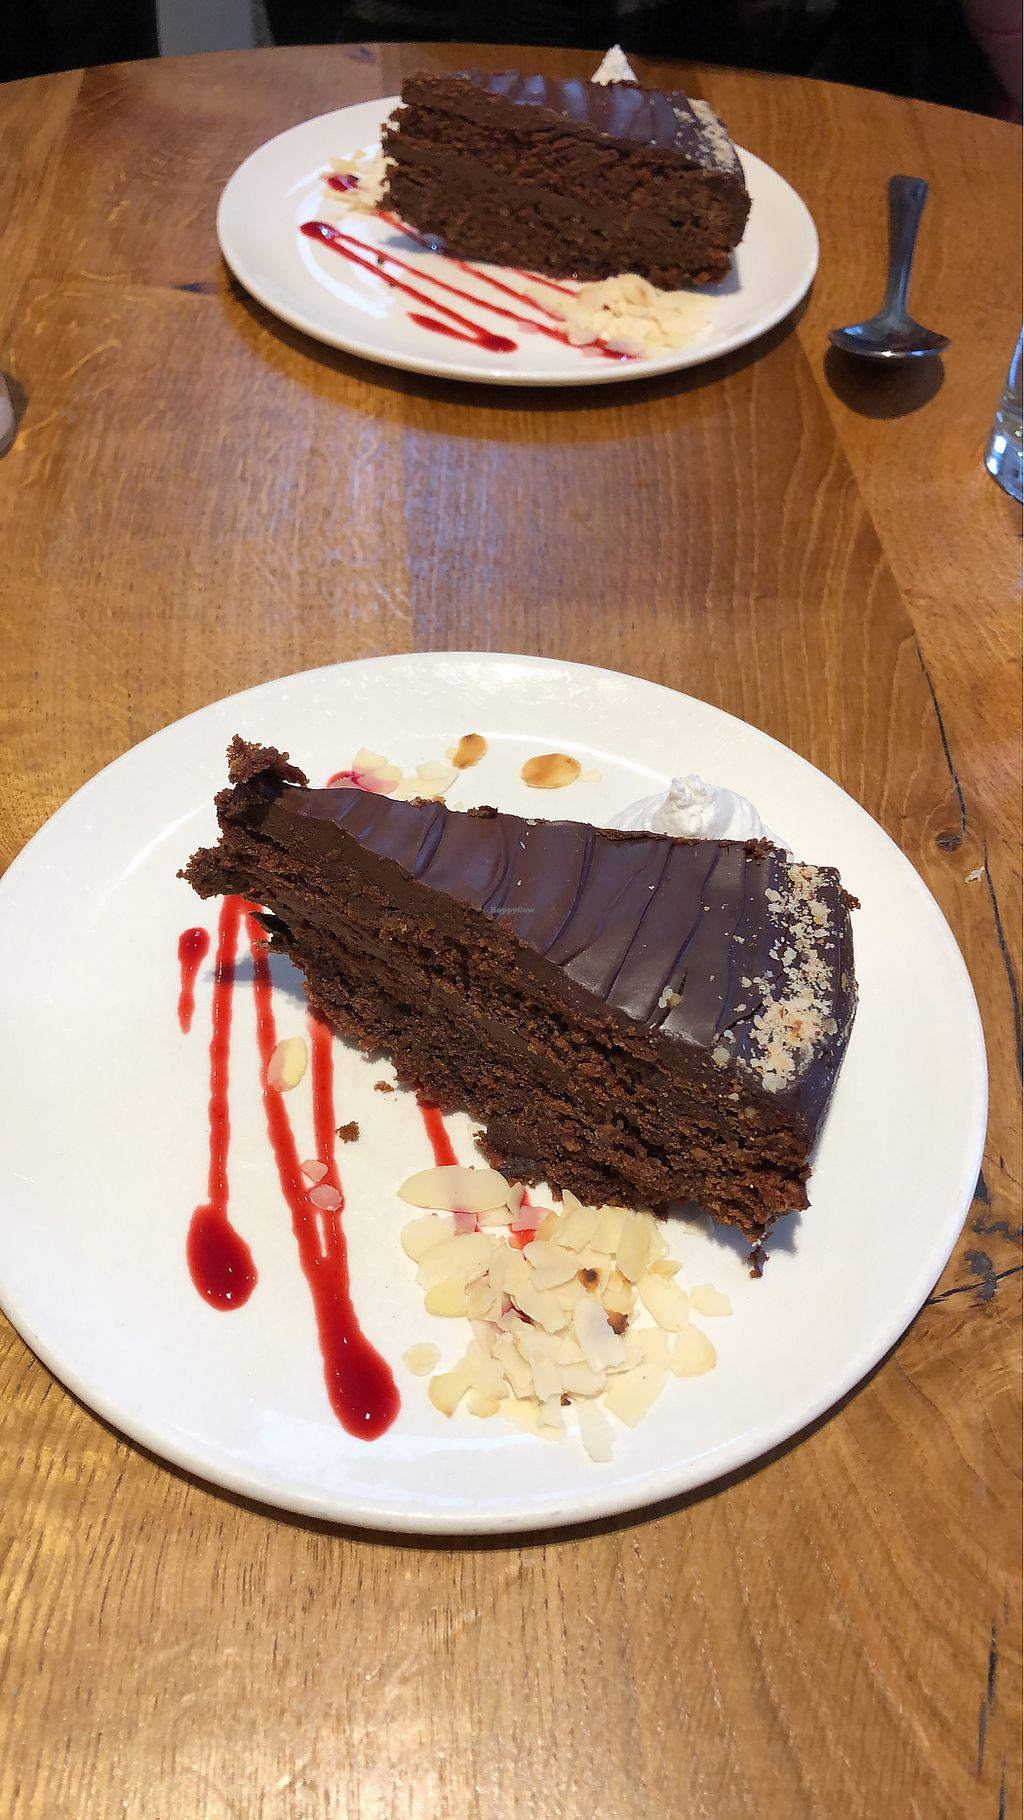 """Photo of Henderson's Vegan  by <a href=""""/members/profile/jessicajmac"""">jessicajmac</a> <br/>Chocolate/Nut cake  <br/> April 10, 2018  - <a href='/contact/abuse/image/59873/383508'>Report</a>"""